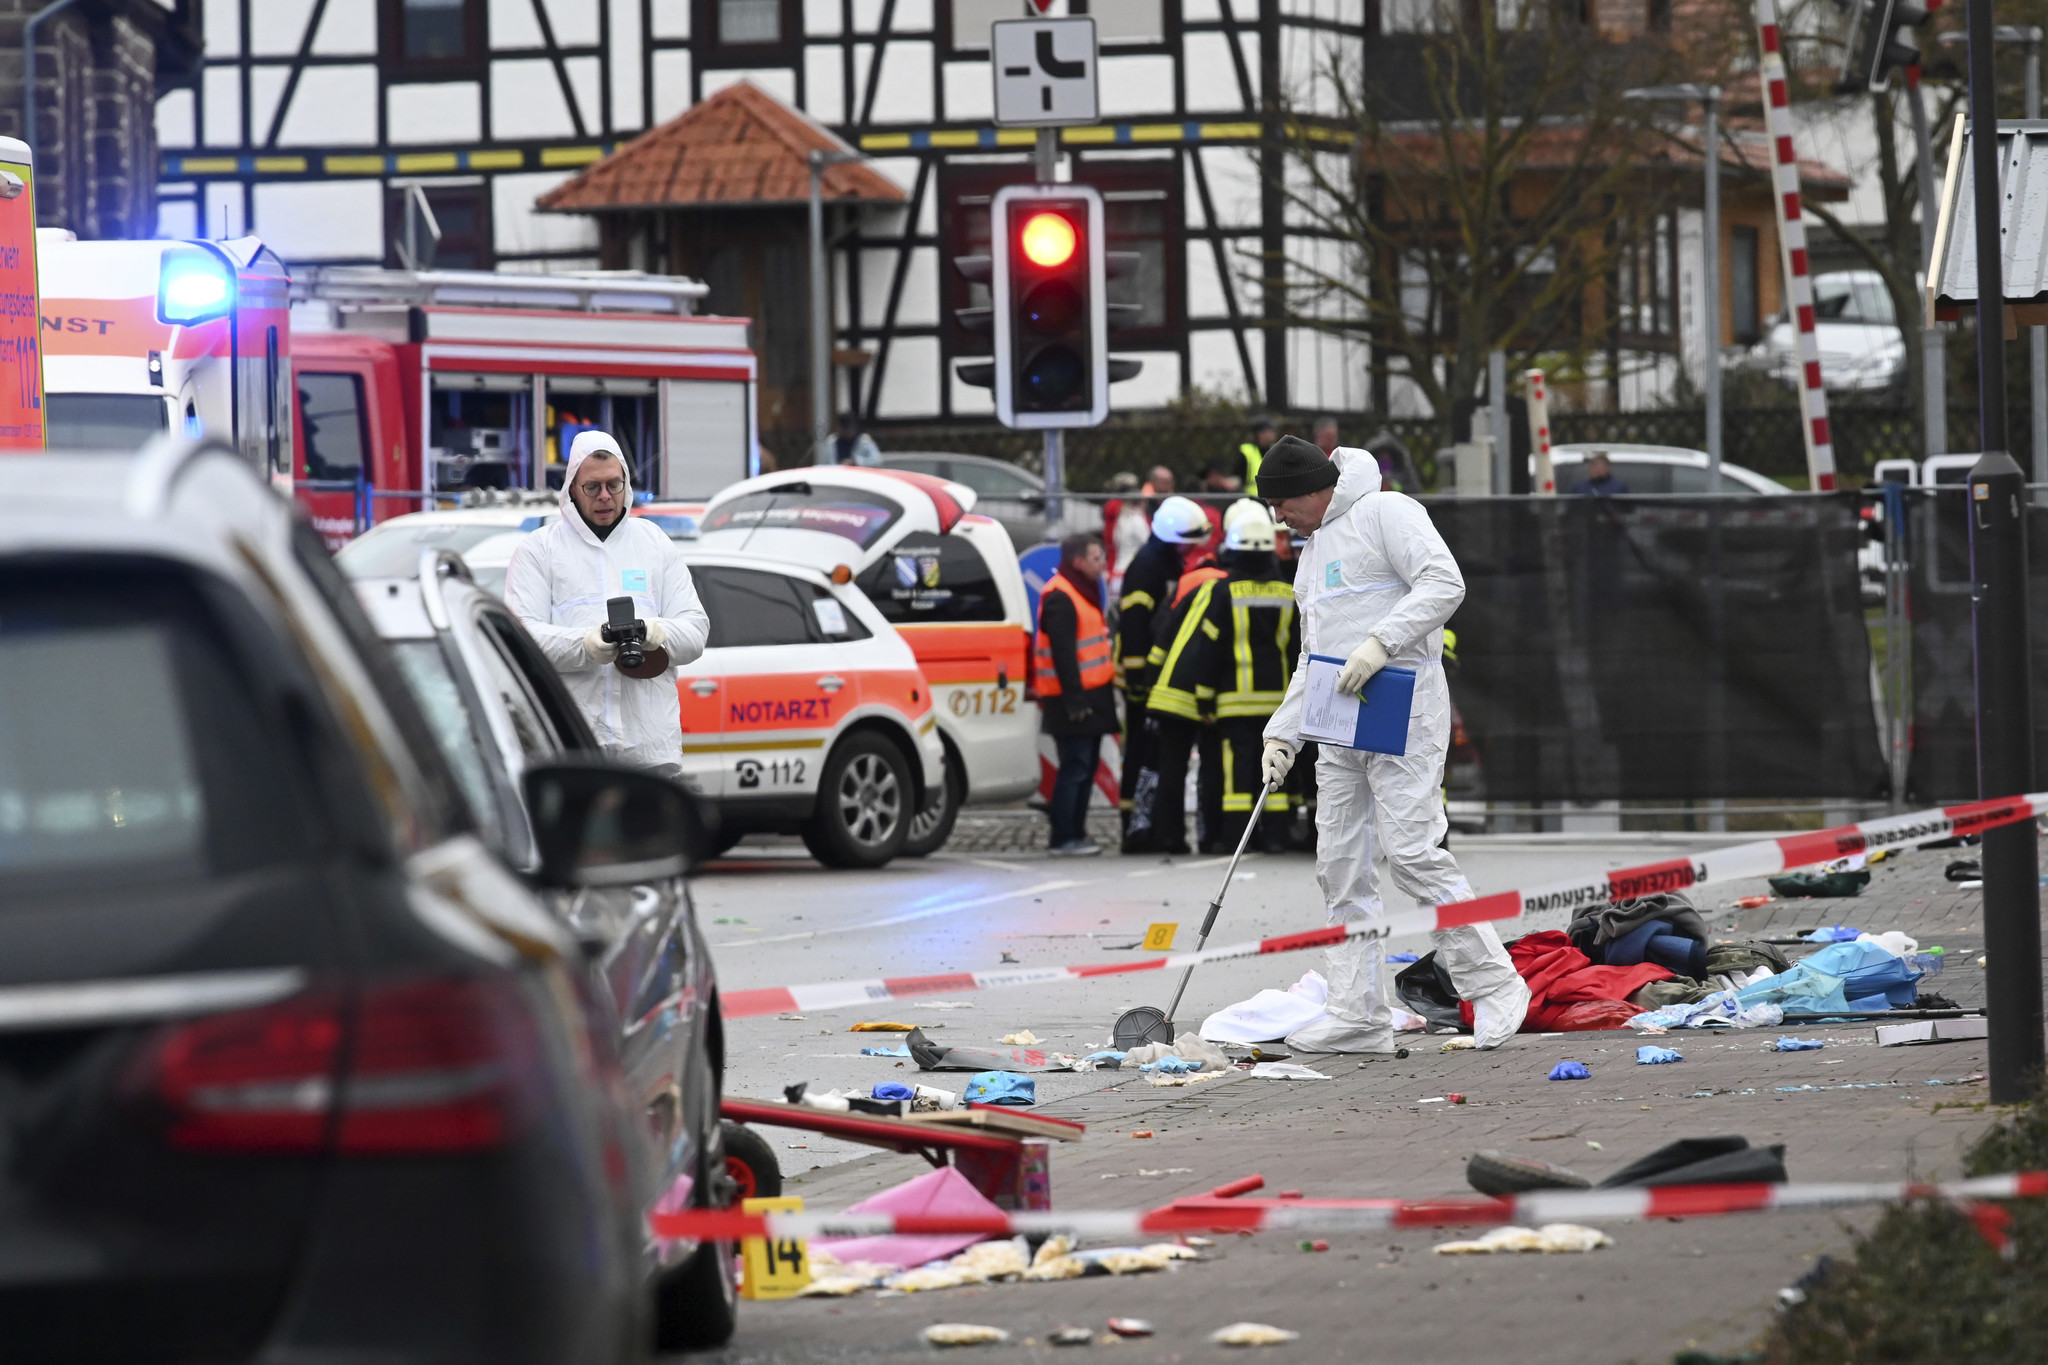 Dozens of people hurt after car plows into crowd during Carnival parade in Germany